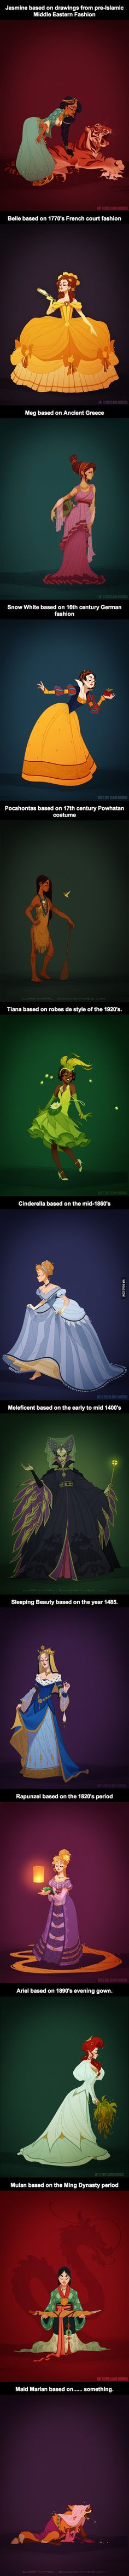 Disney Princesses Based on Historical Period Fashion. Oh gosh, the last one... I'm dying. By shoomlah on DeviantArt